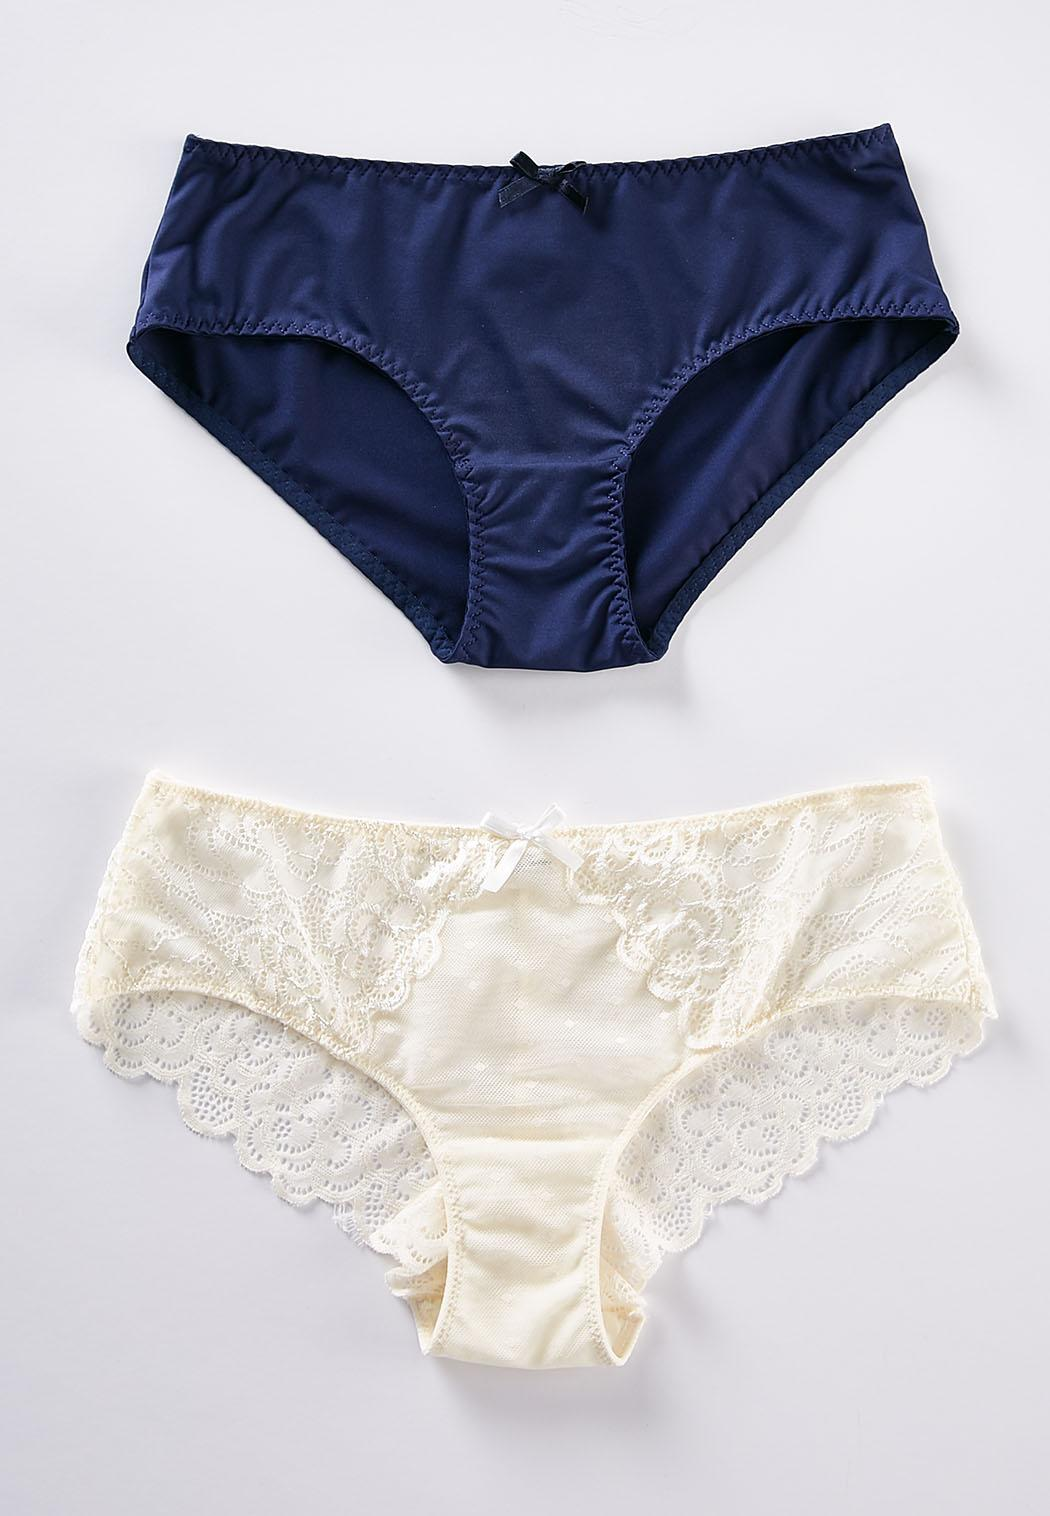 391441d9cf9 Navy And Ivory Lace Panty Set Intimates Cato Fashions